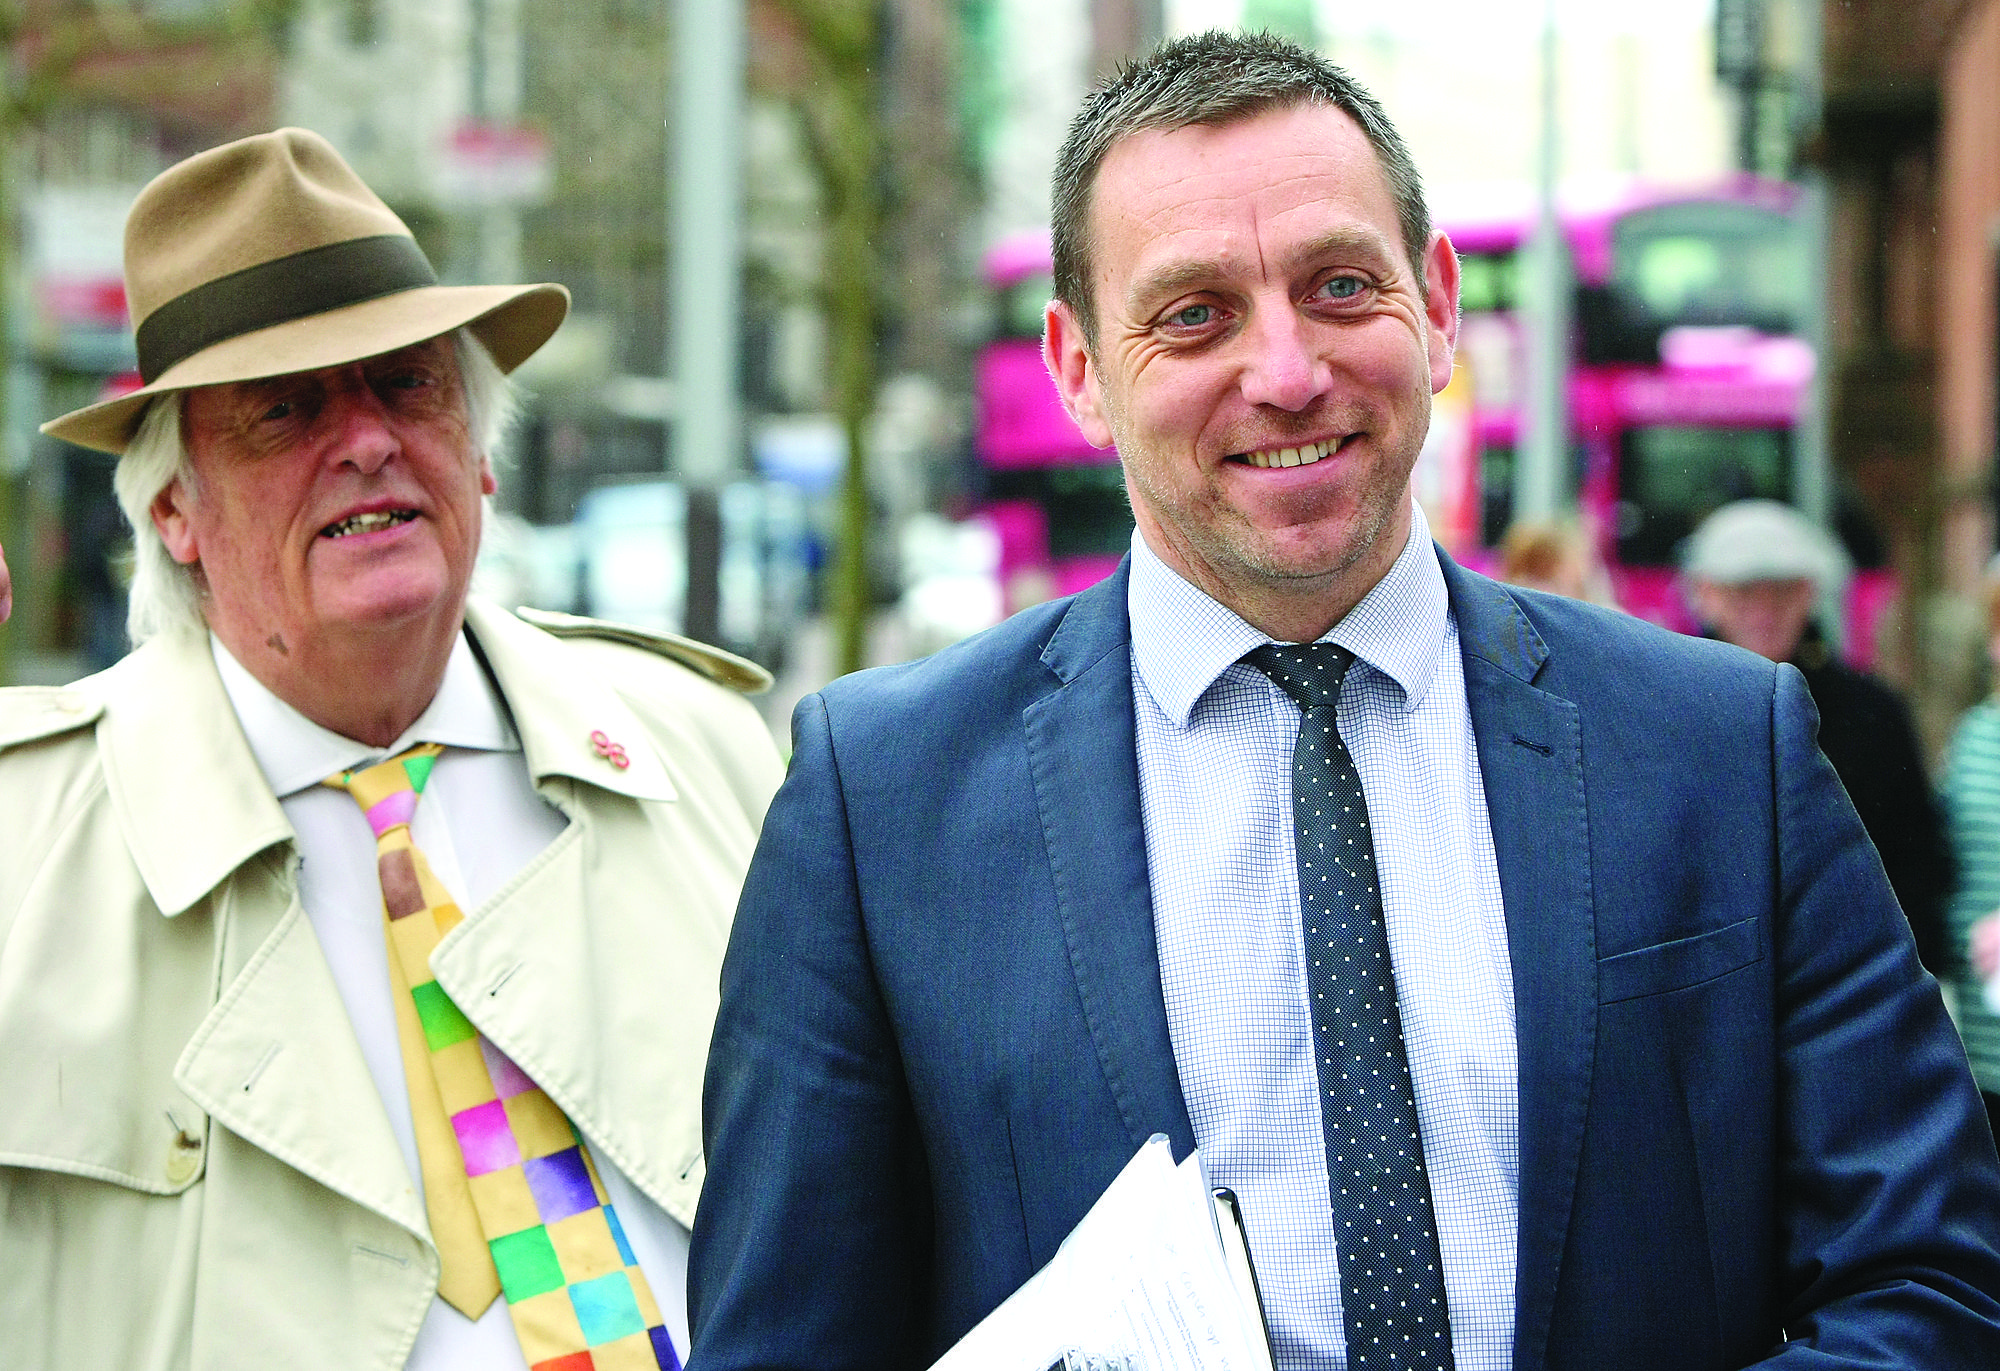 PARTNERSHIP: Michael Mansfield QC and solicitor Pádraig Ó Muirigh will be back together again representing citizens concerned at the British government's Internal Markets Bill